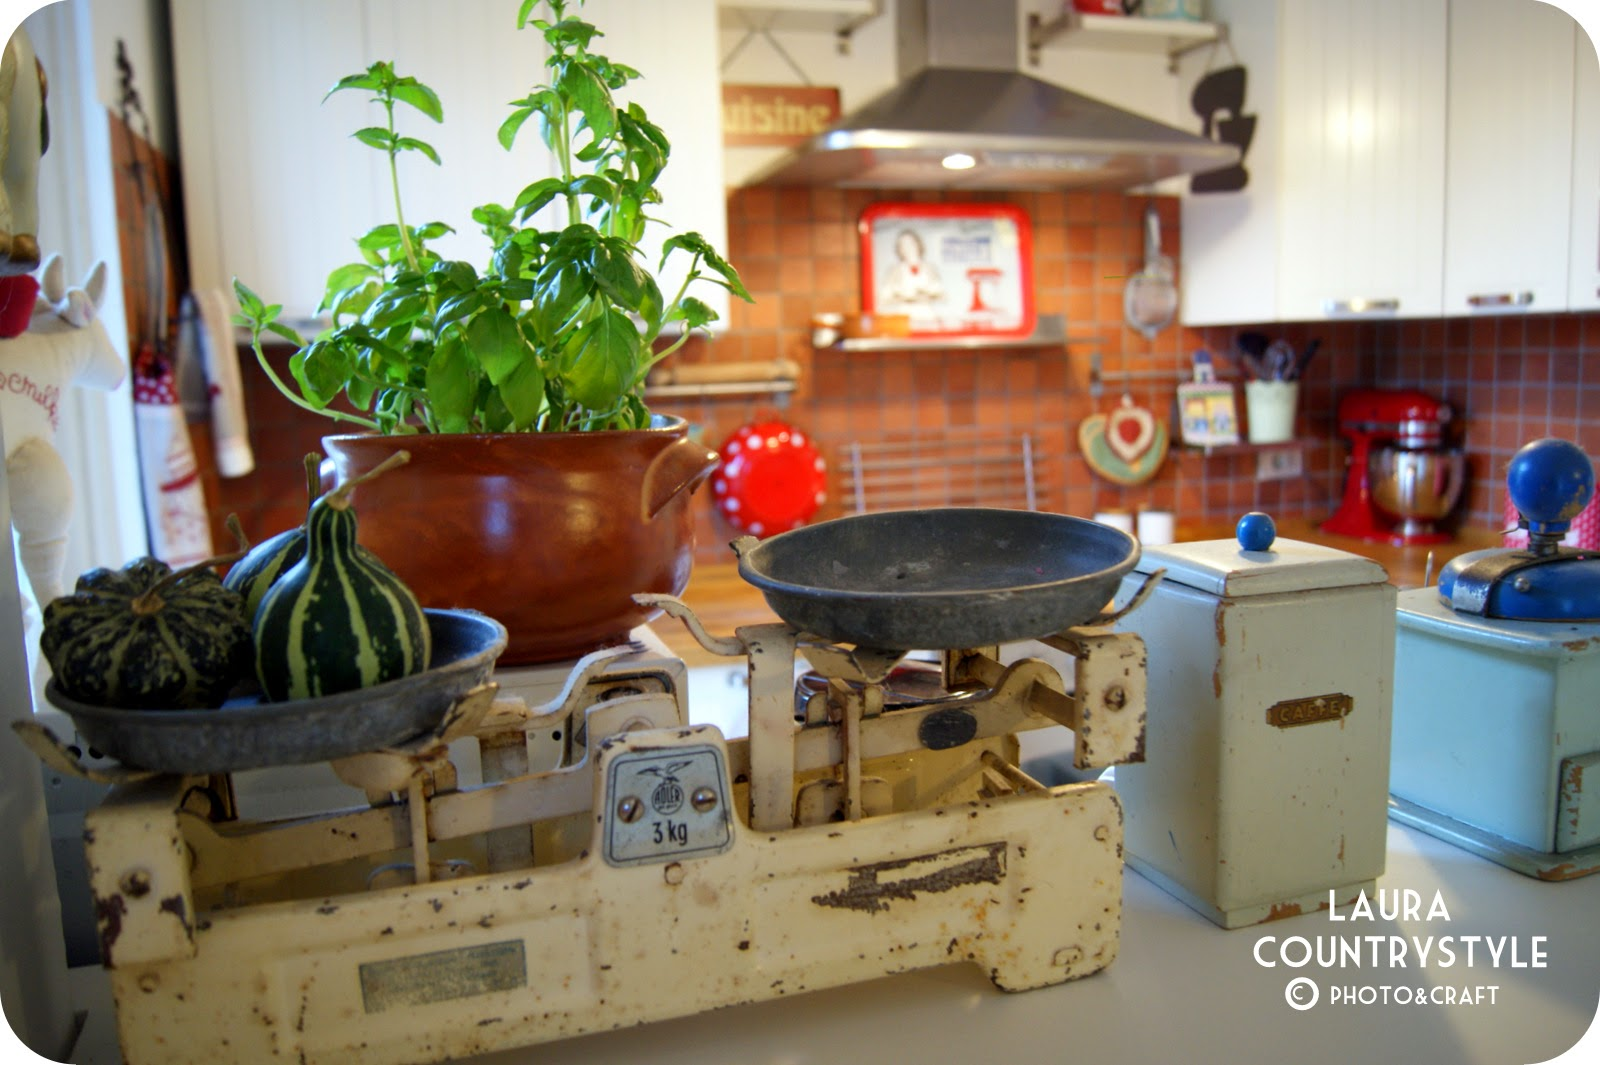 Country style: settembre 2014